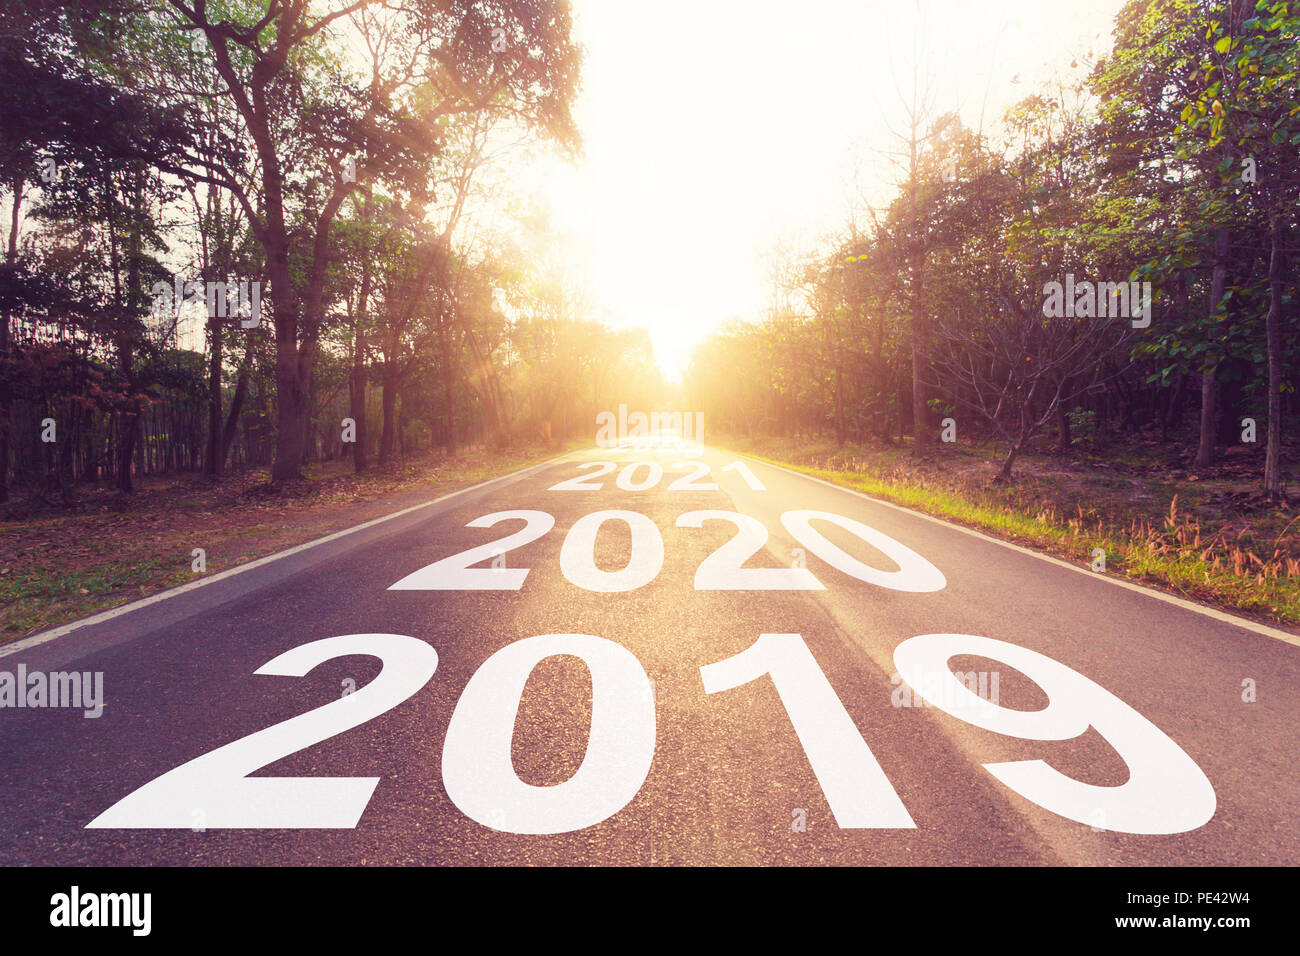 Empty asphalt road and New year 2019 concept. Driving on an empty road to Goals 2019. - Stock Image